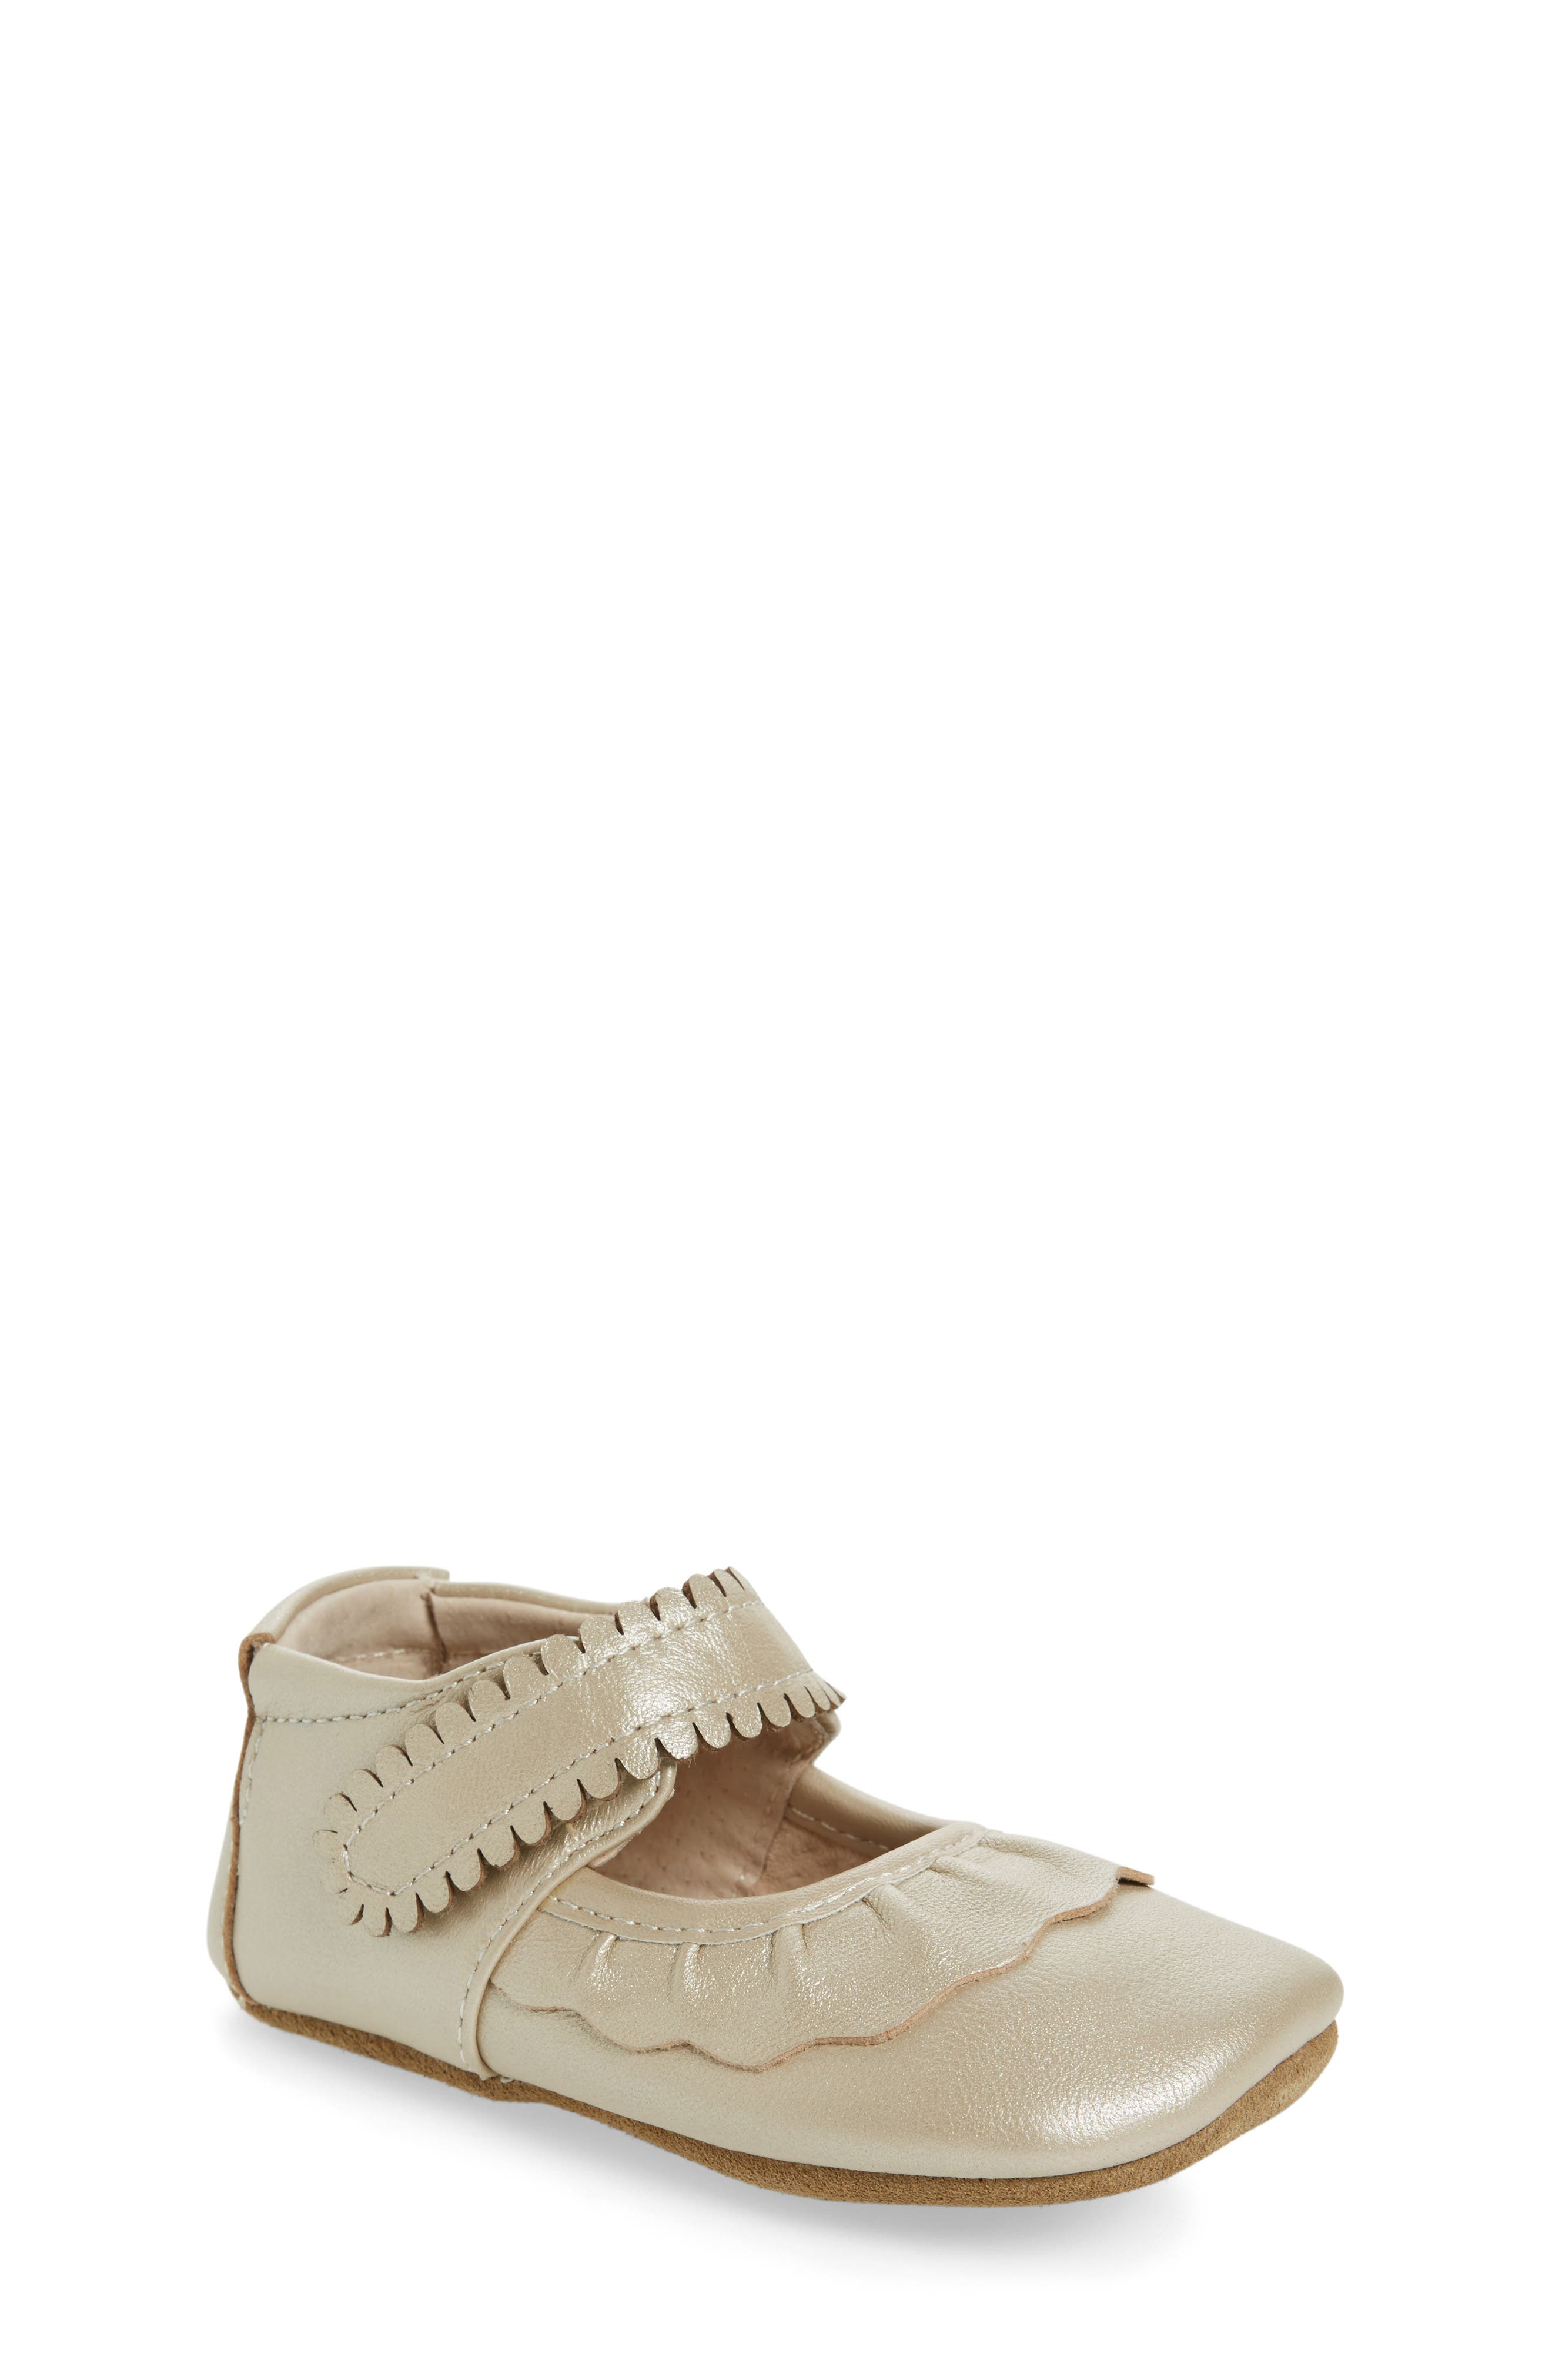 'Ruche' Mary Jane Crib Shoe,                         Main,                         color, CHAMPAGNE LEATHER